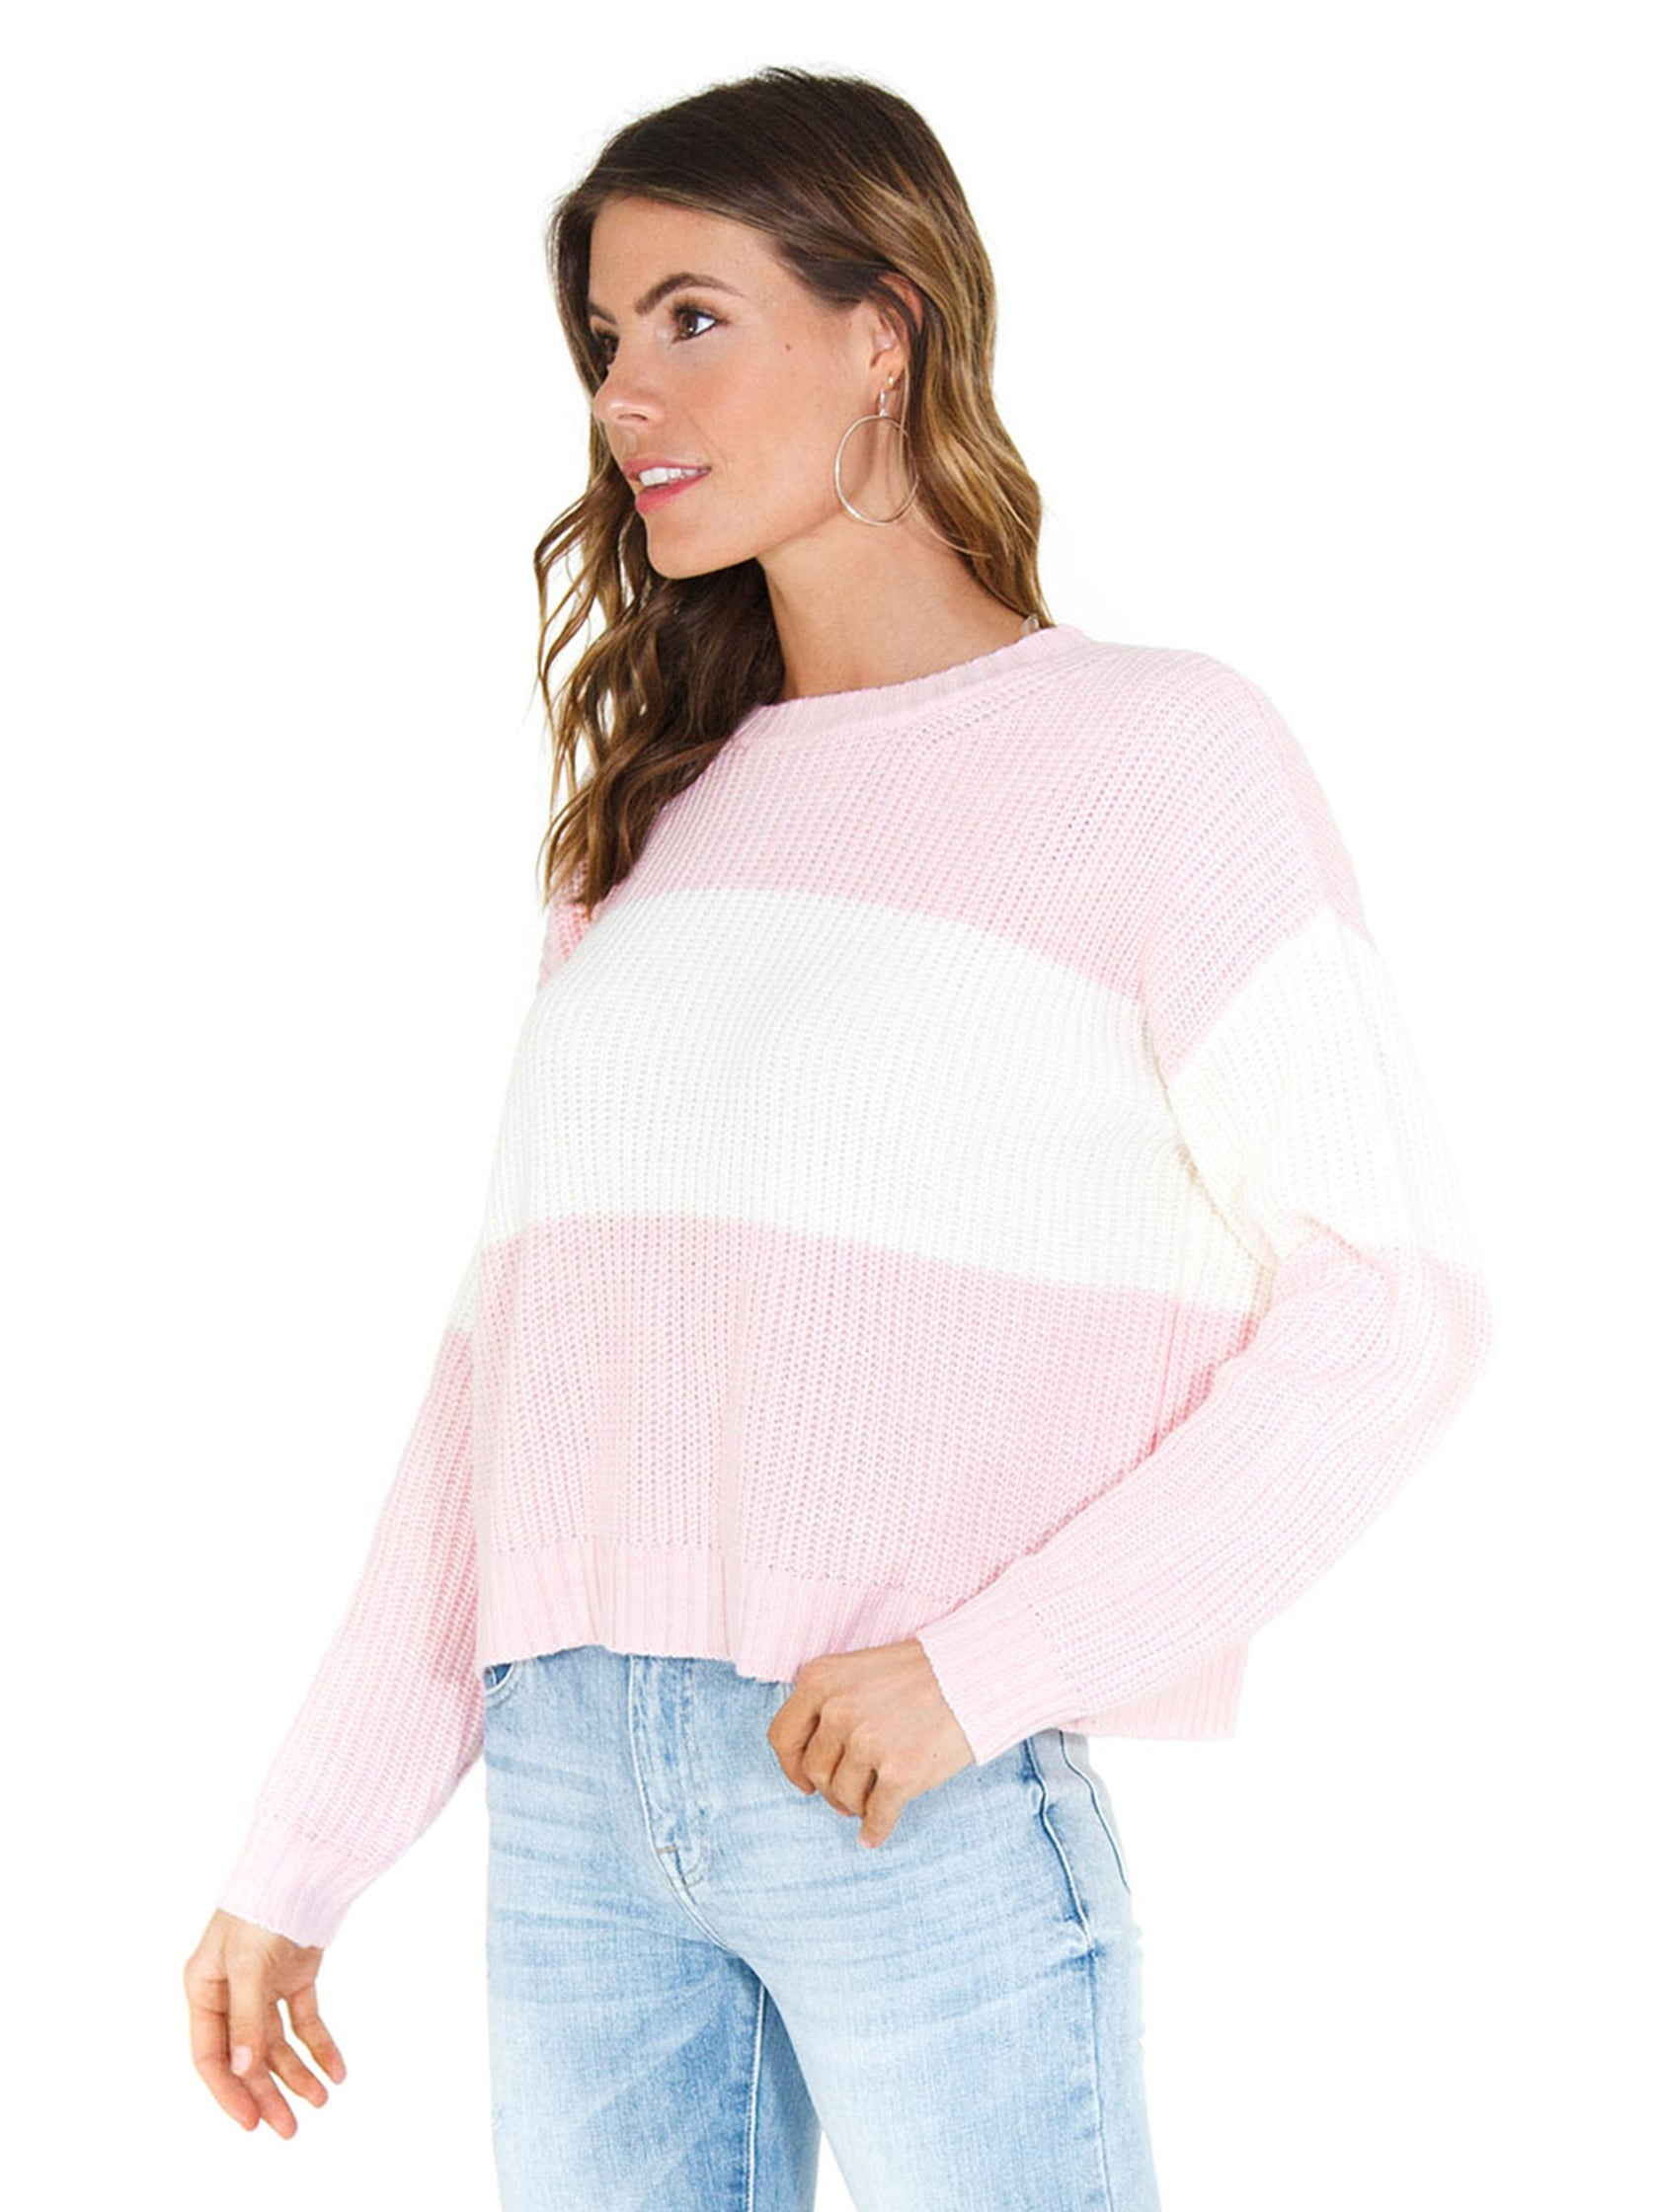 Women wearing a sweater rental from SANCTUARY called Billie Colorblock Shaker Sweater